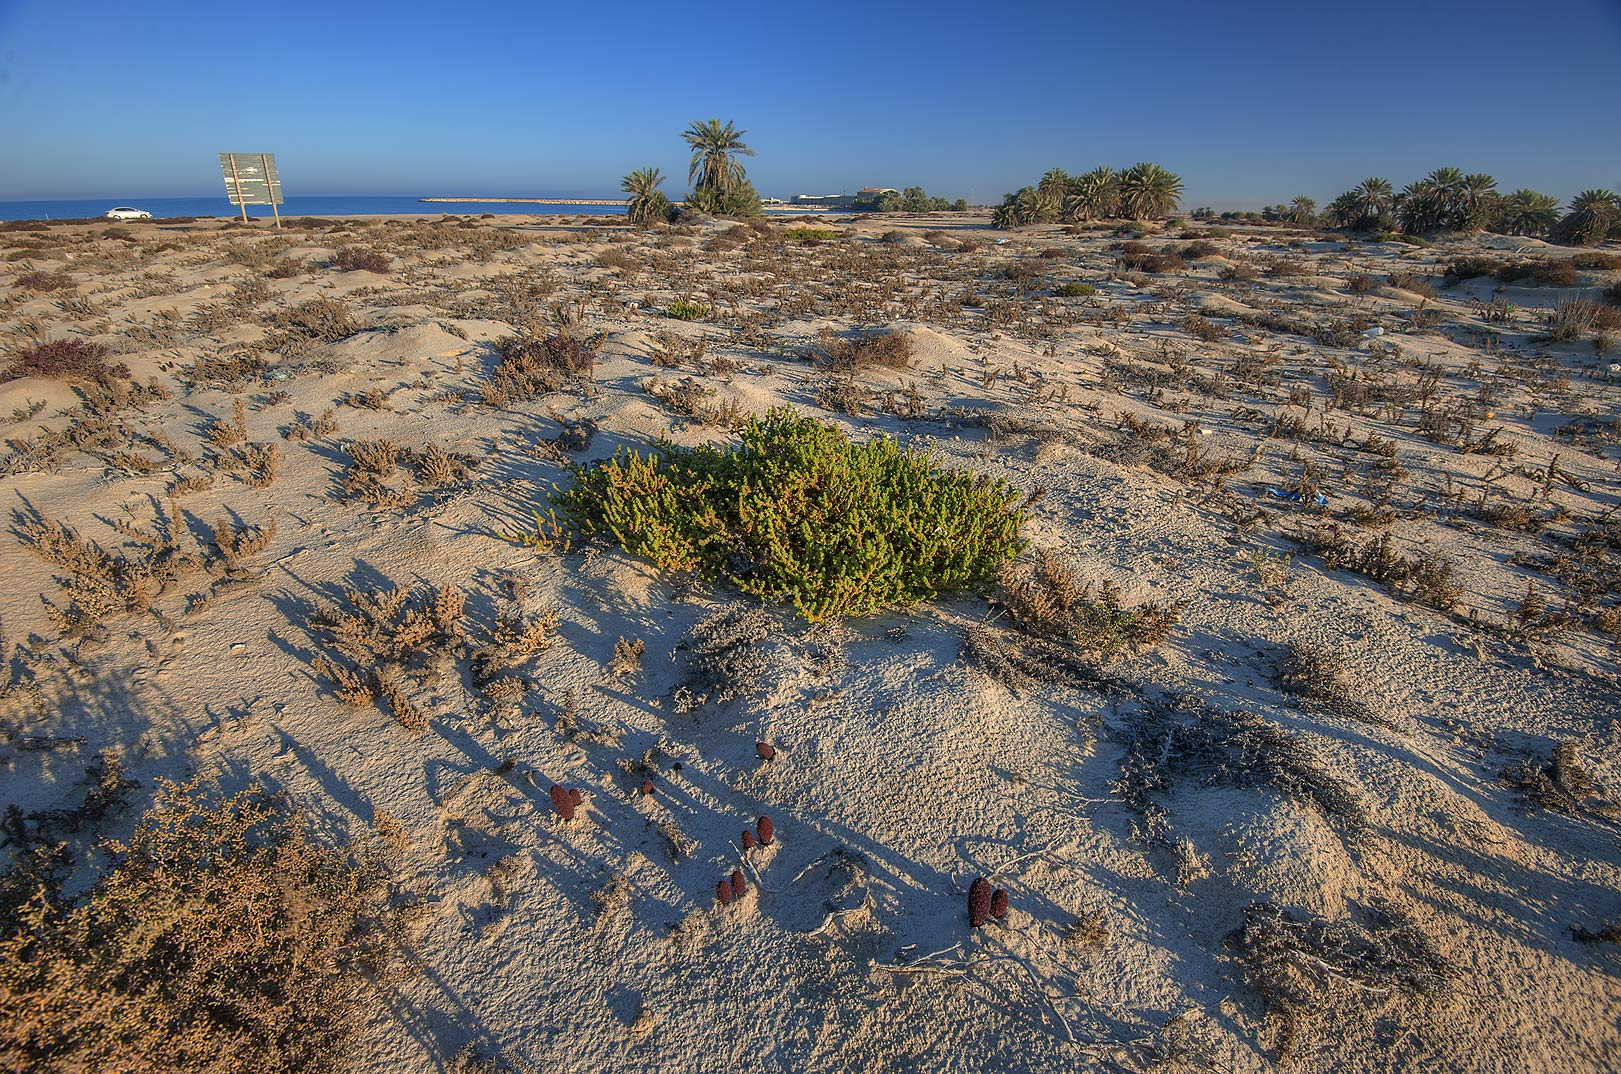 Habitat of Desert Thumb (Cynomorium coccineum...well near Umm Bab. South-western Qatar